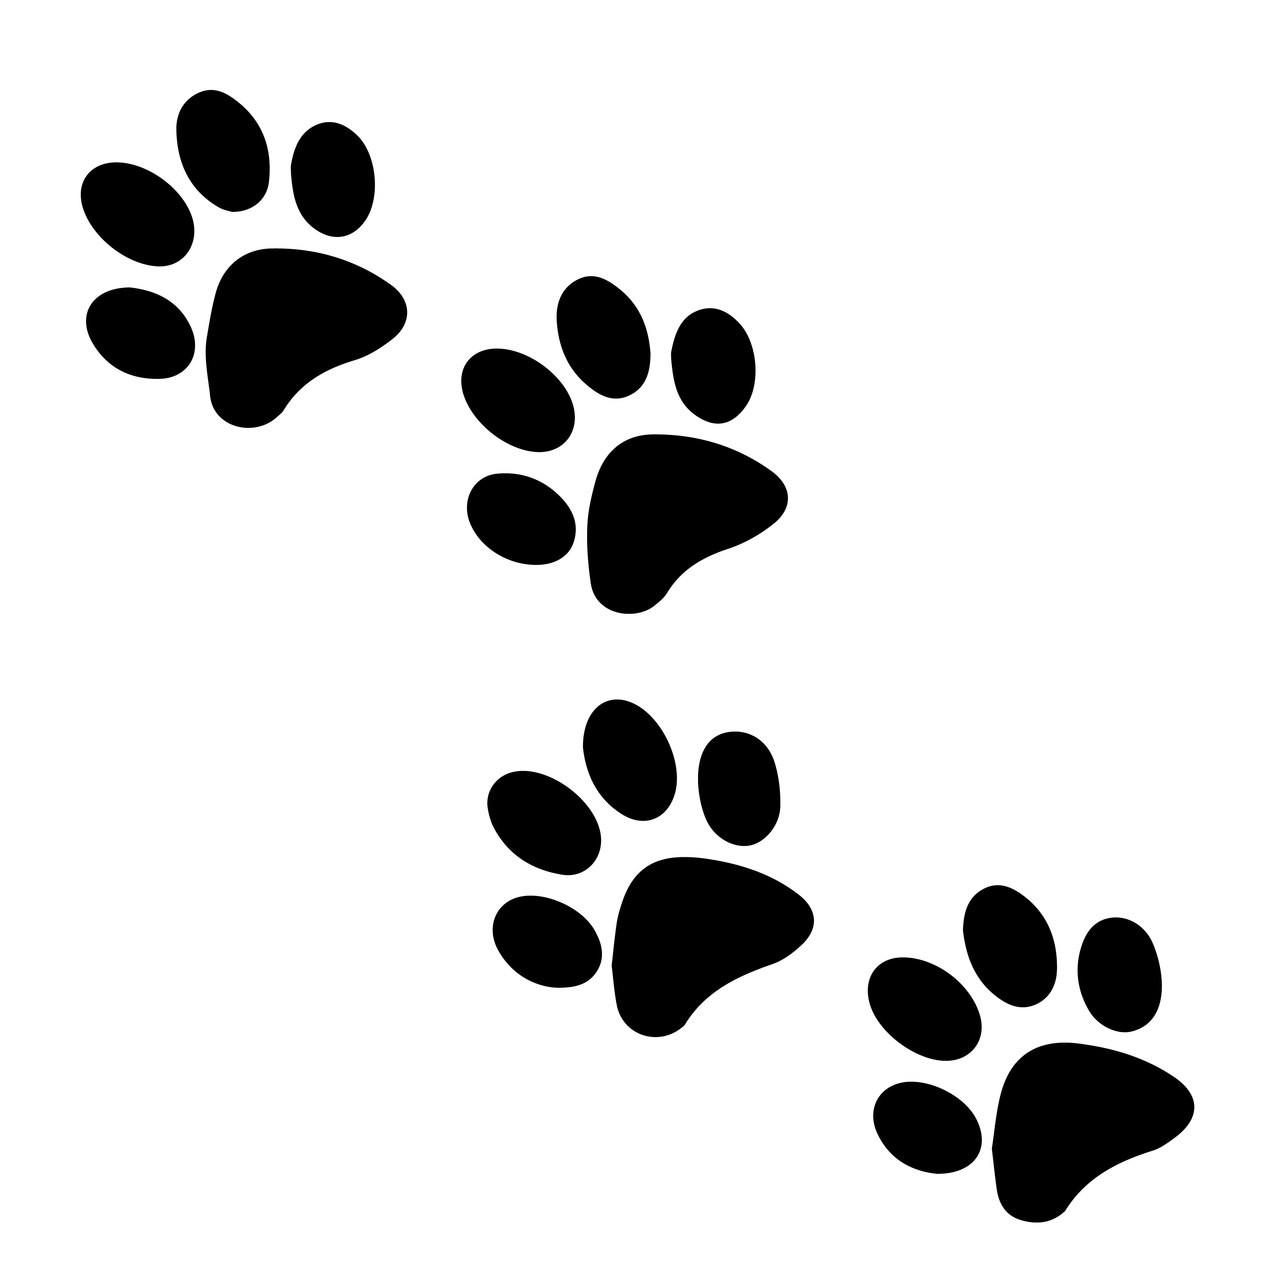 photo relating to Dog Paw Print Stencil Printable Free called No cost Paw Print Svg Slash History Craftables